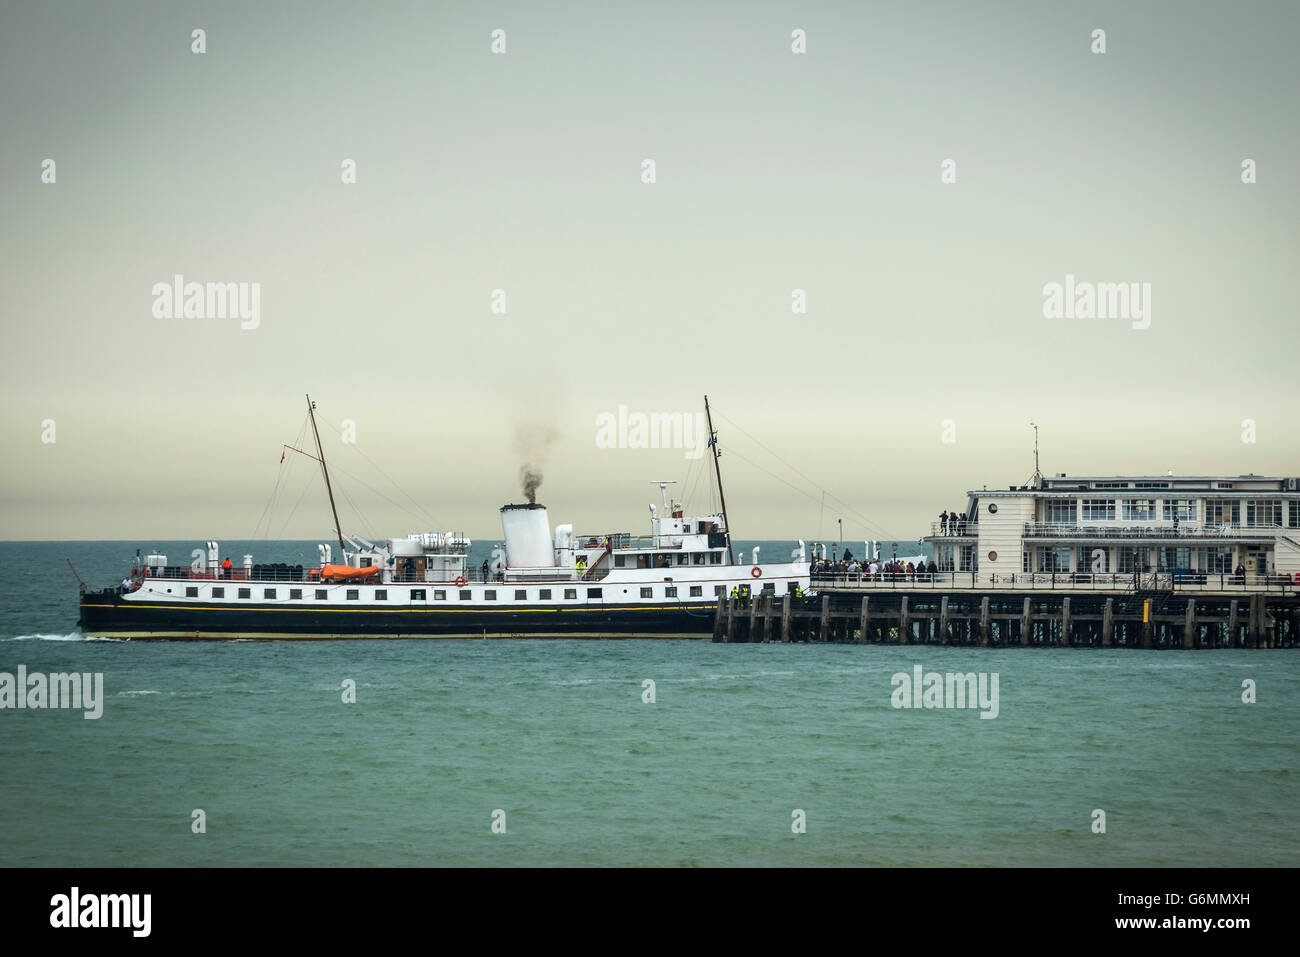 The MV Balmoral arriving at Worthing Pier on an English Channel excursion. - Stock Image